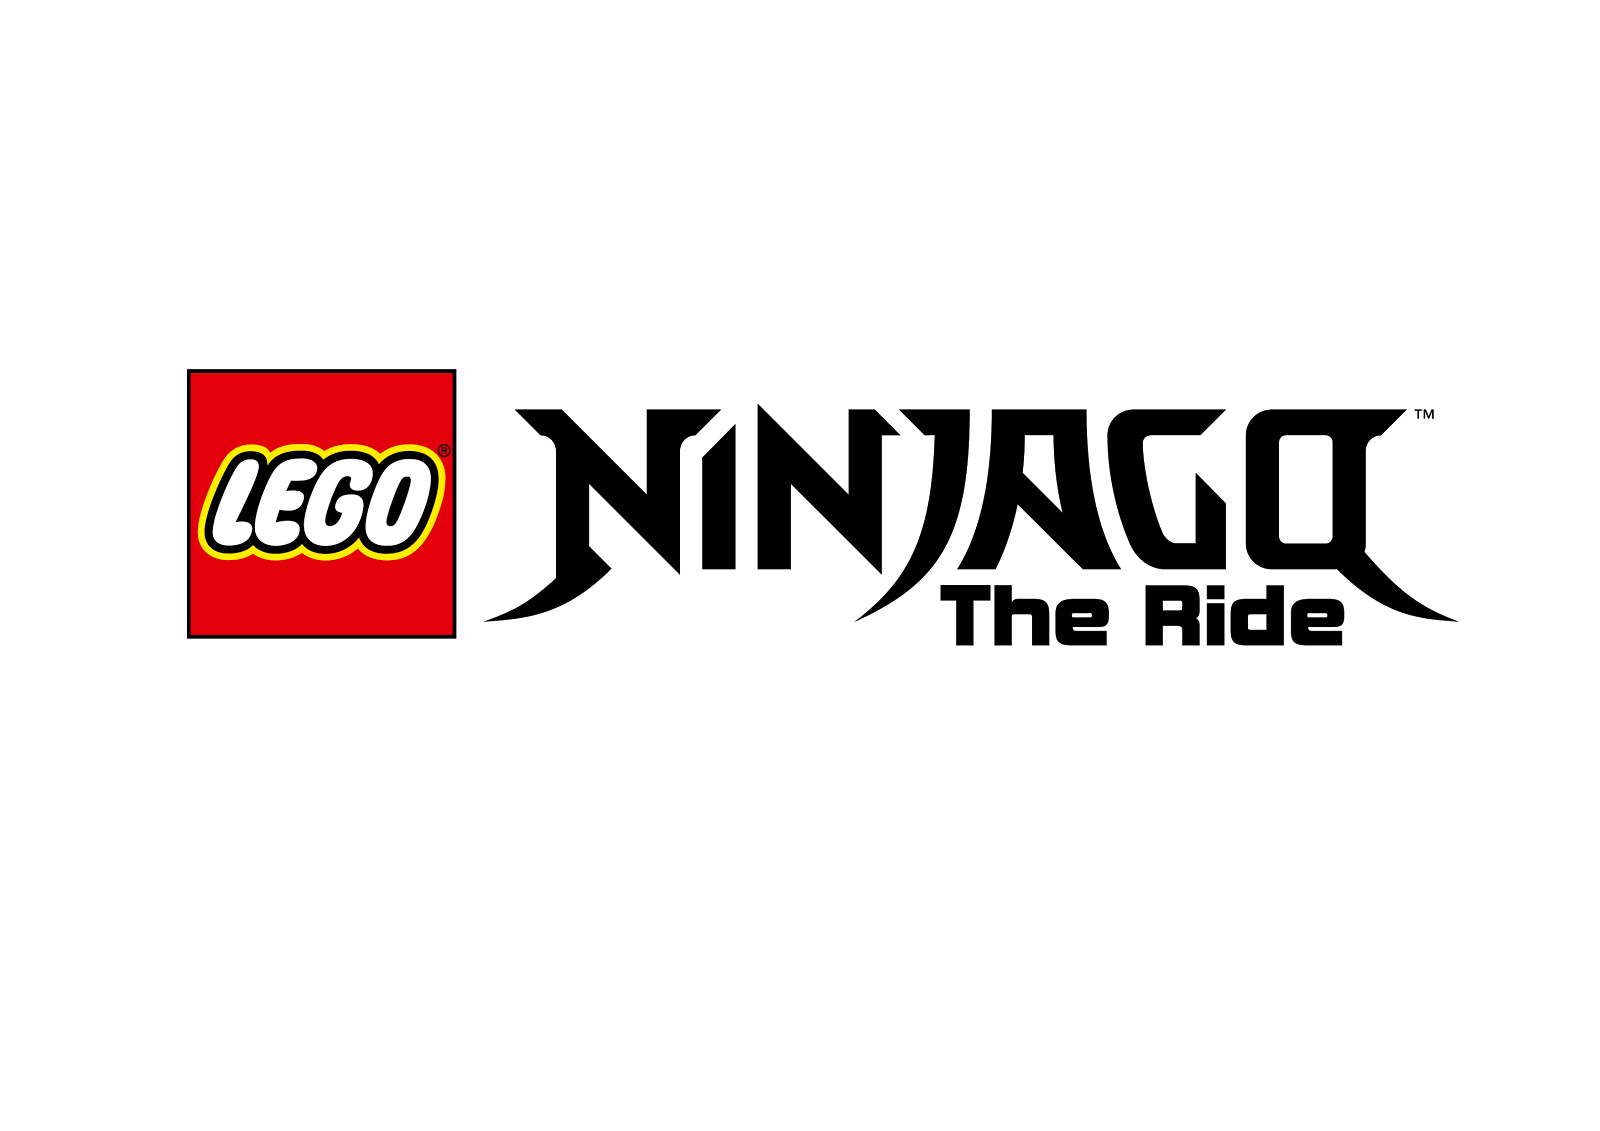 Become the Ninja When LEGO NINJAGO World Opens Jan. 12